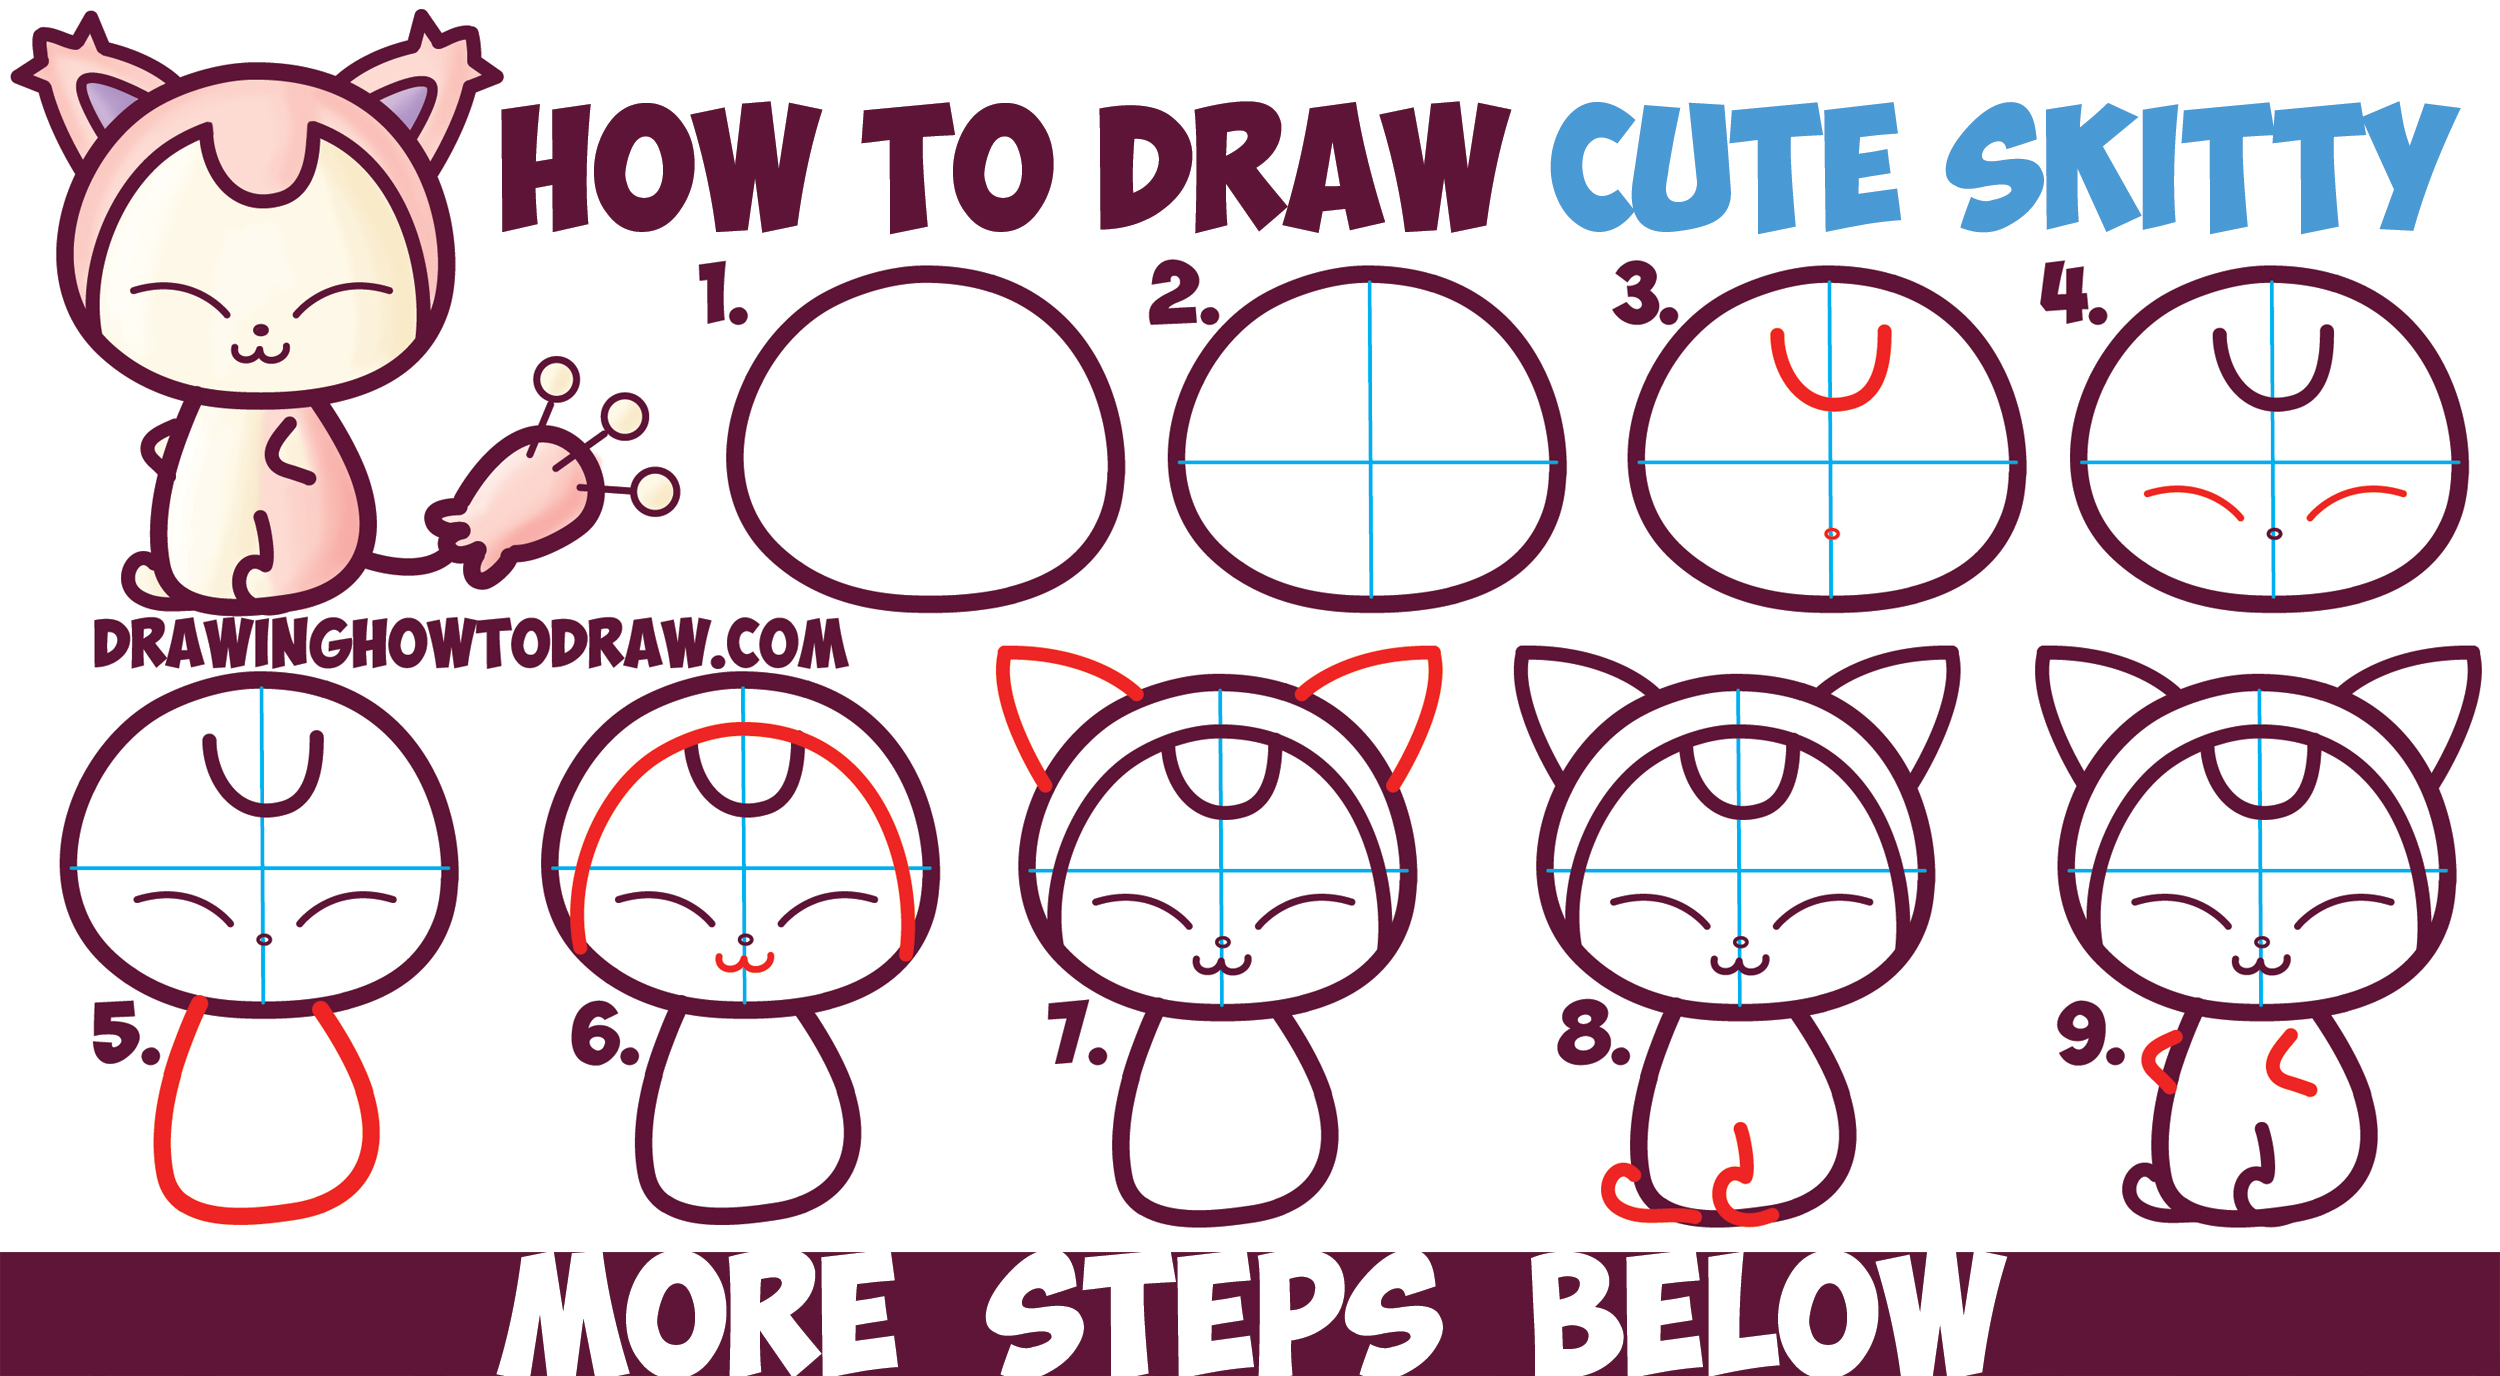 how to draw cute kawaii chibi skitty from pokemon in